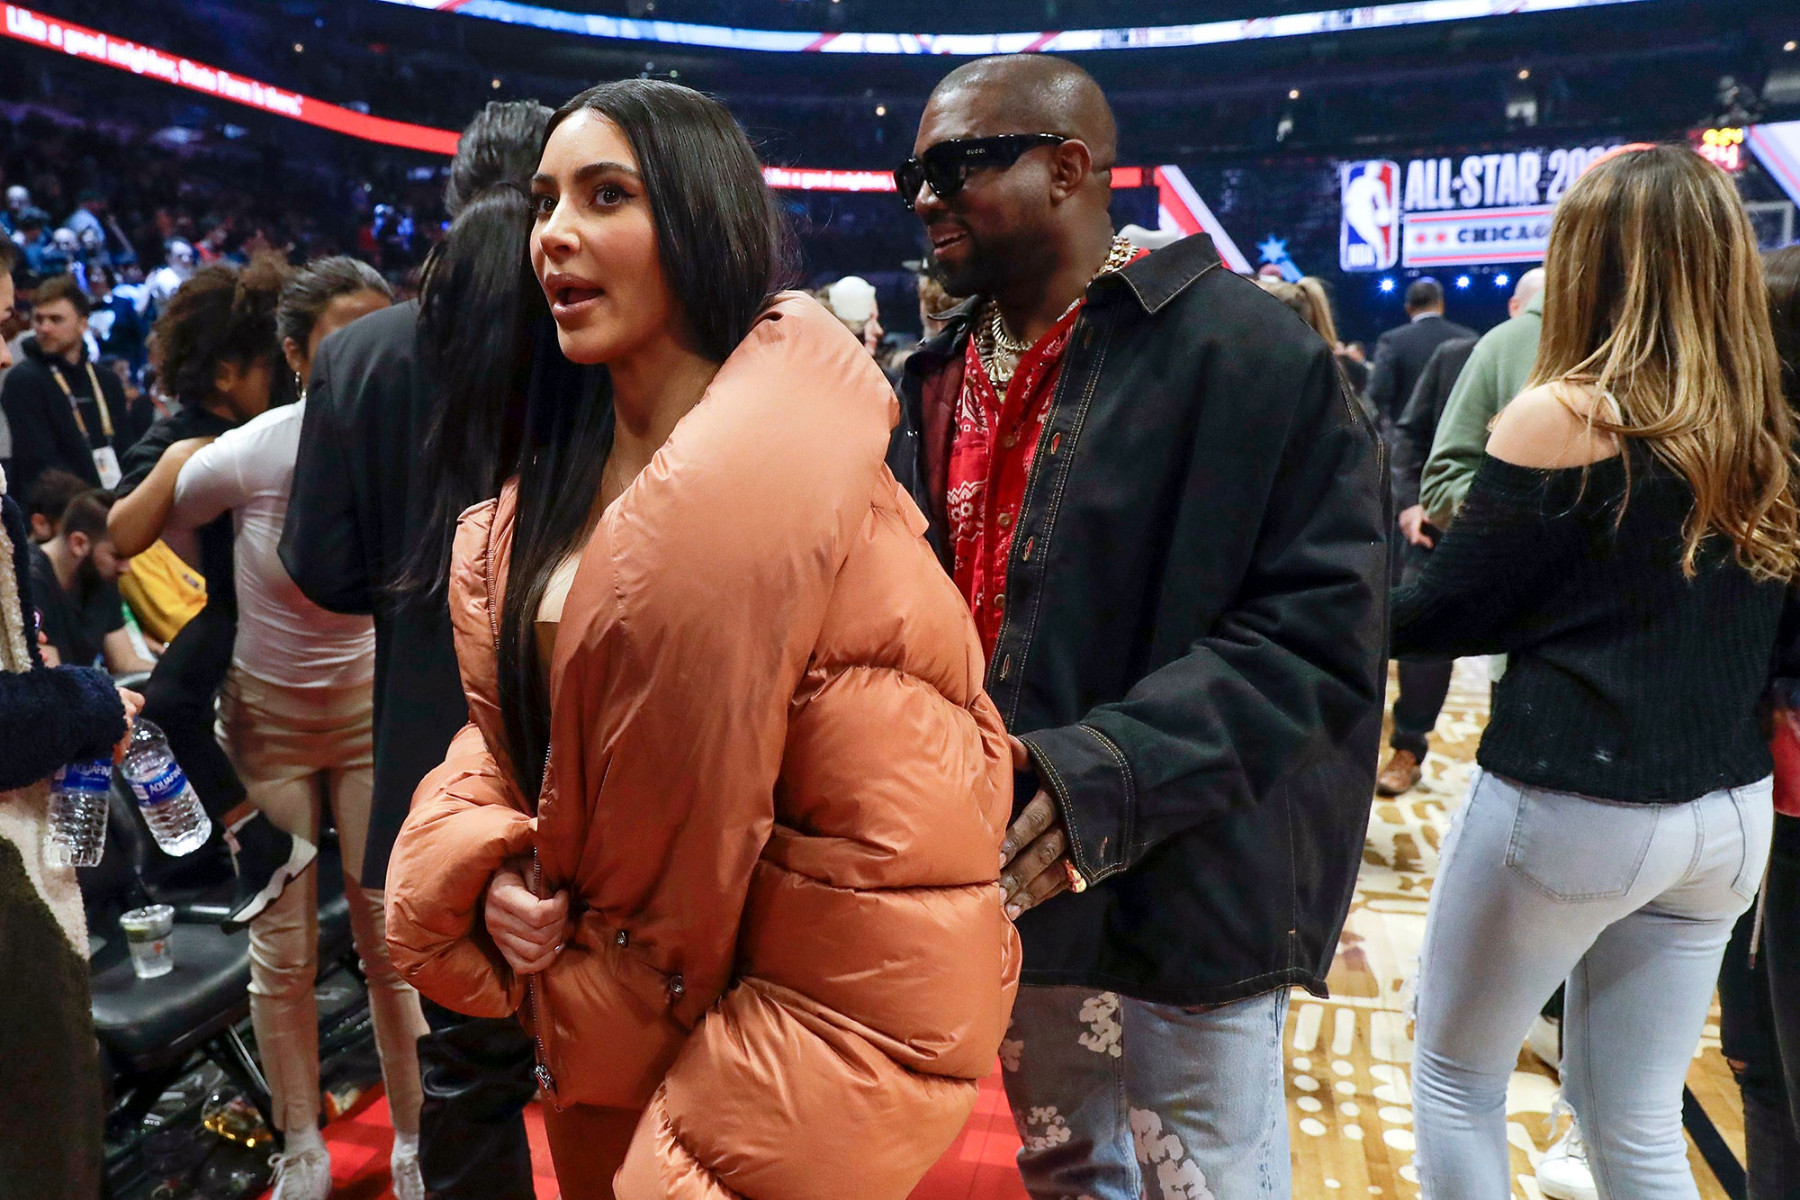 Kim-Kardashian-Kanye-West-NBA-All-Star-Game